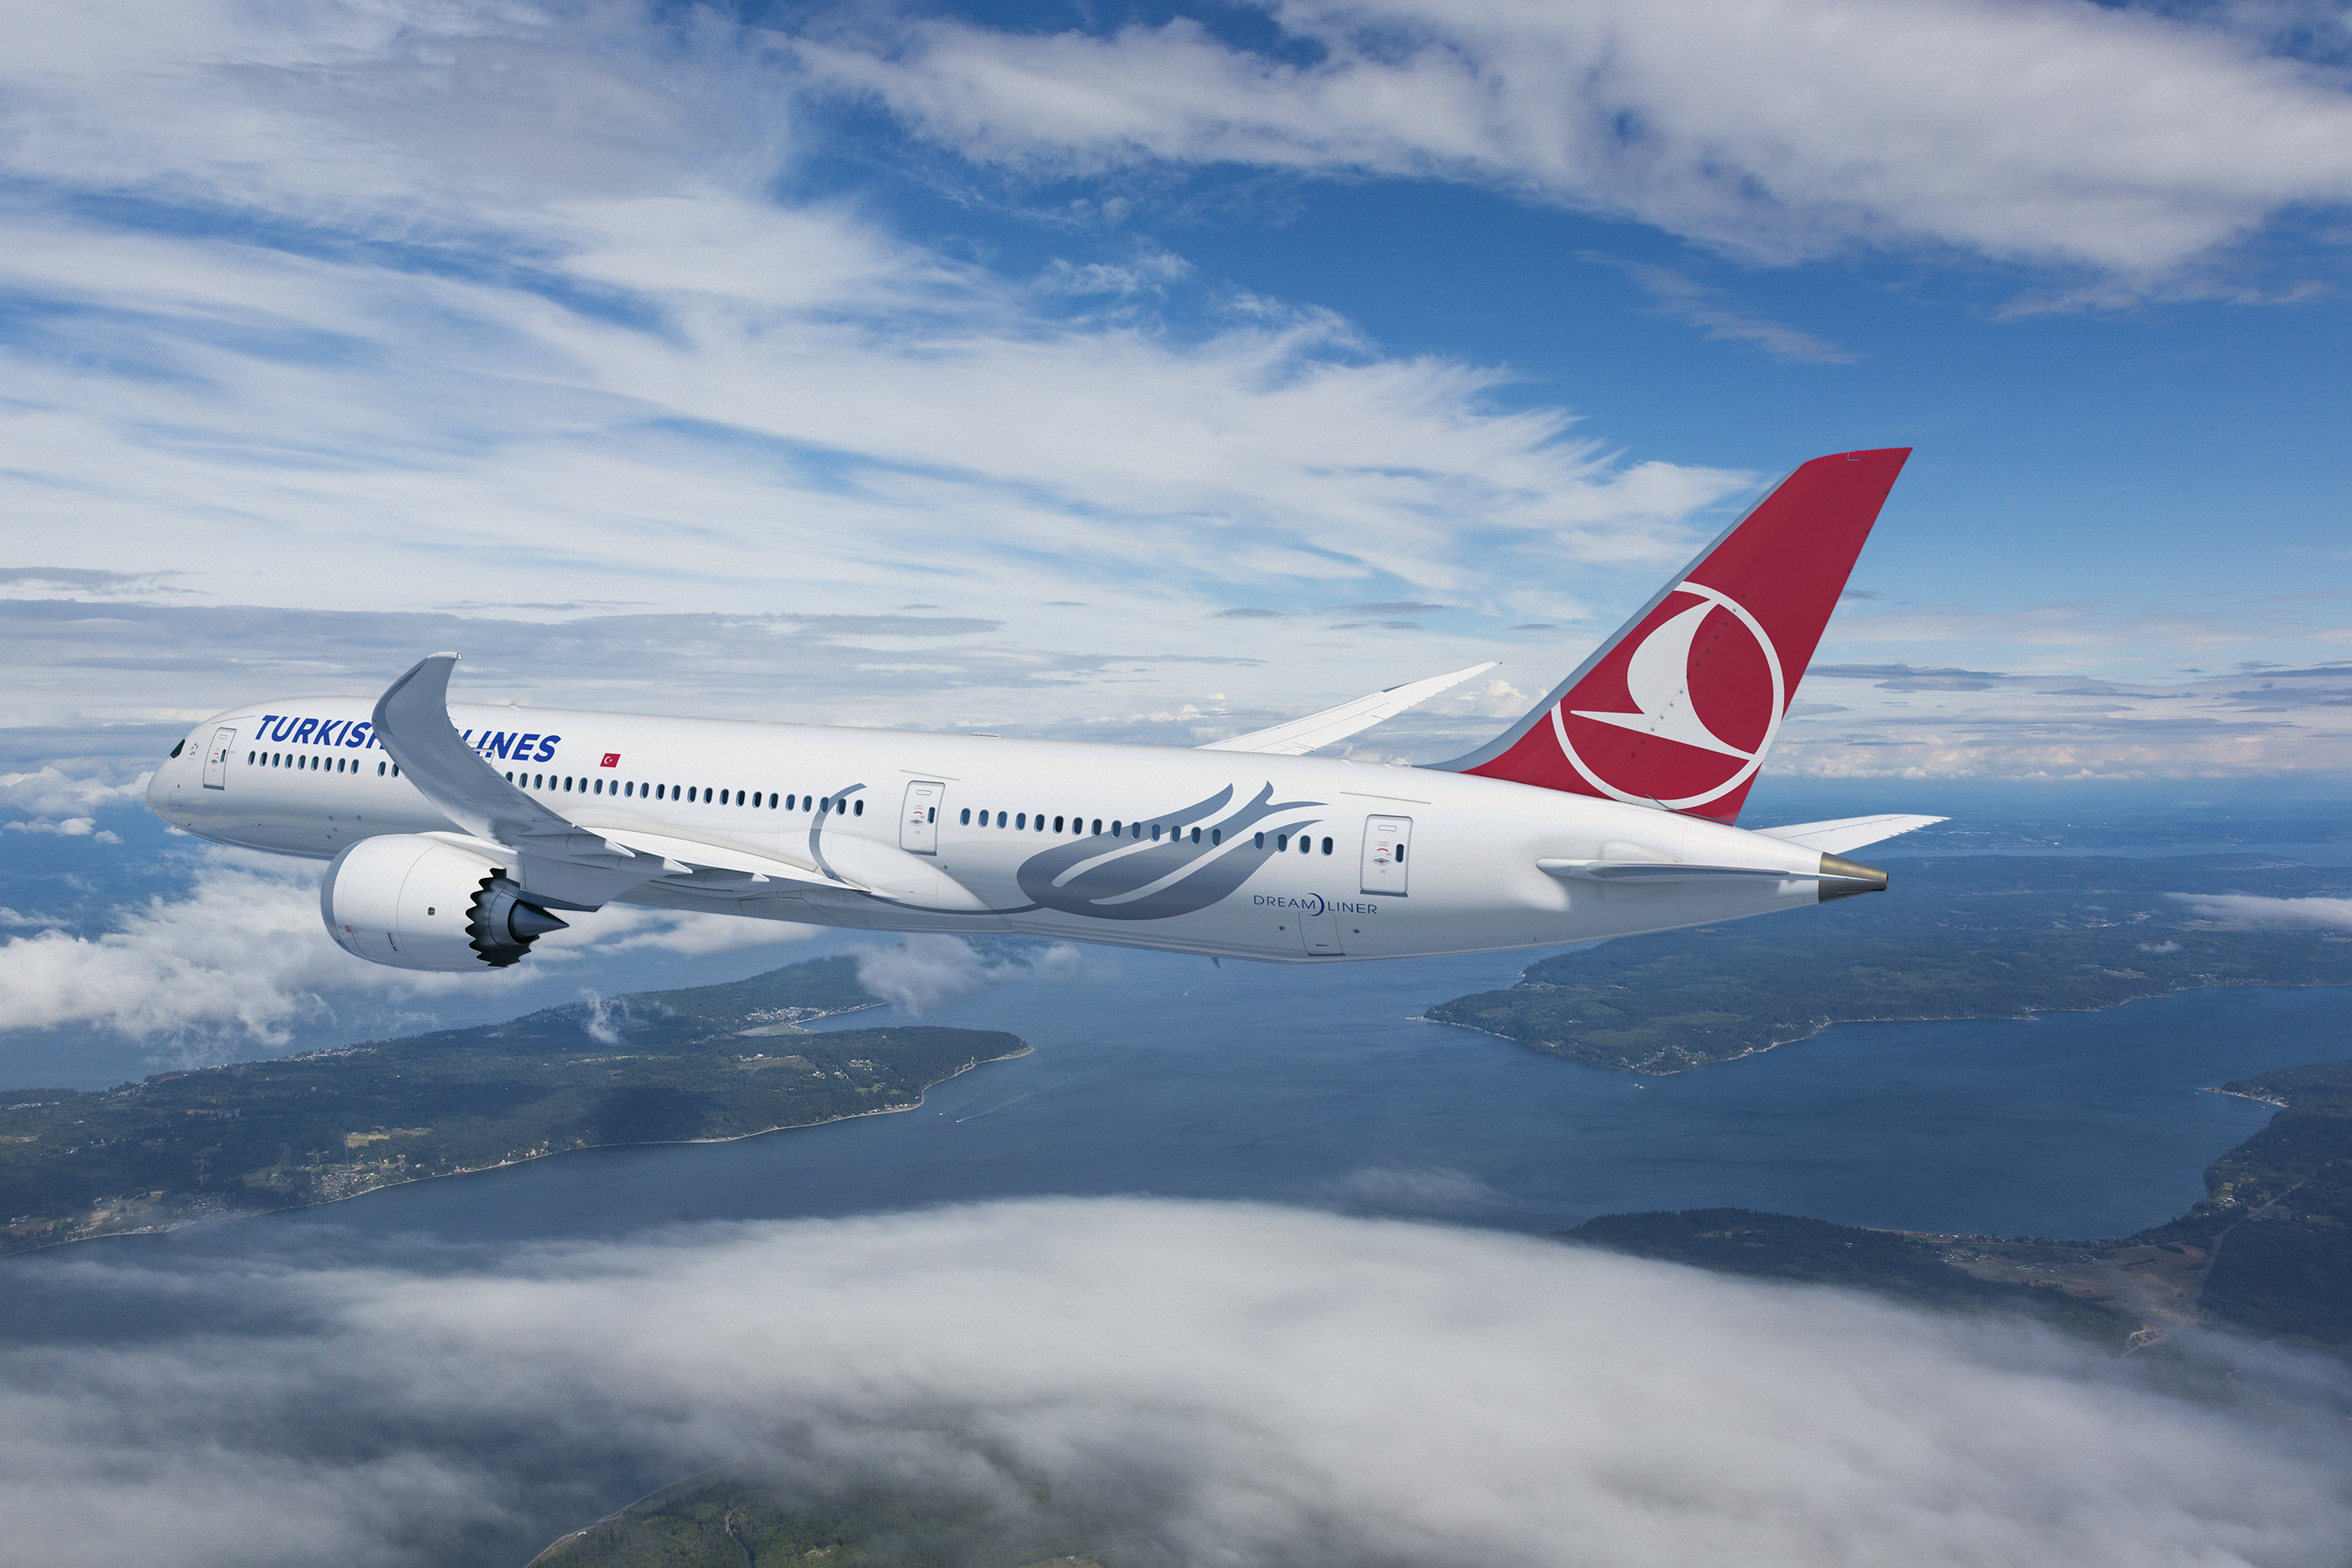 Turkish Airlines Boeing 787-9 Dreamliner. (Boeing illustration) (PRNewsfoto/Boeing)